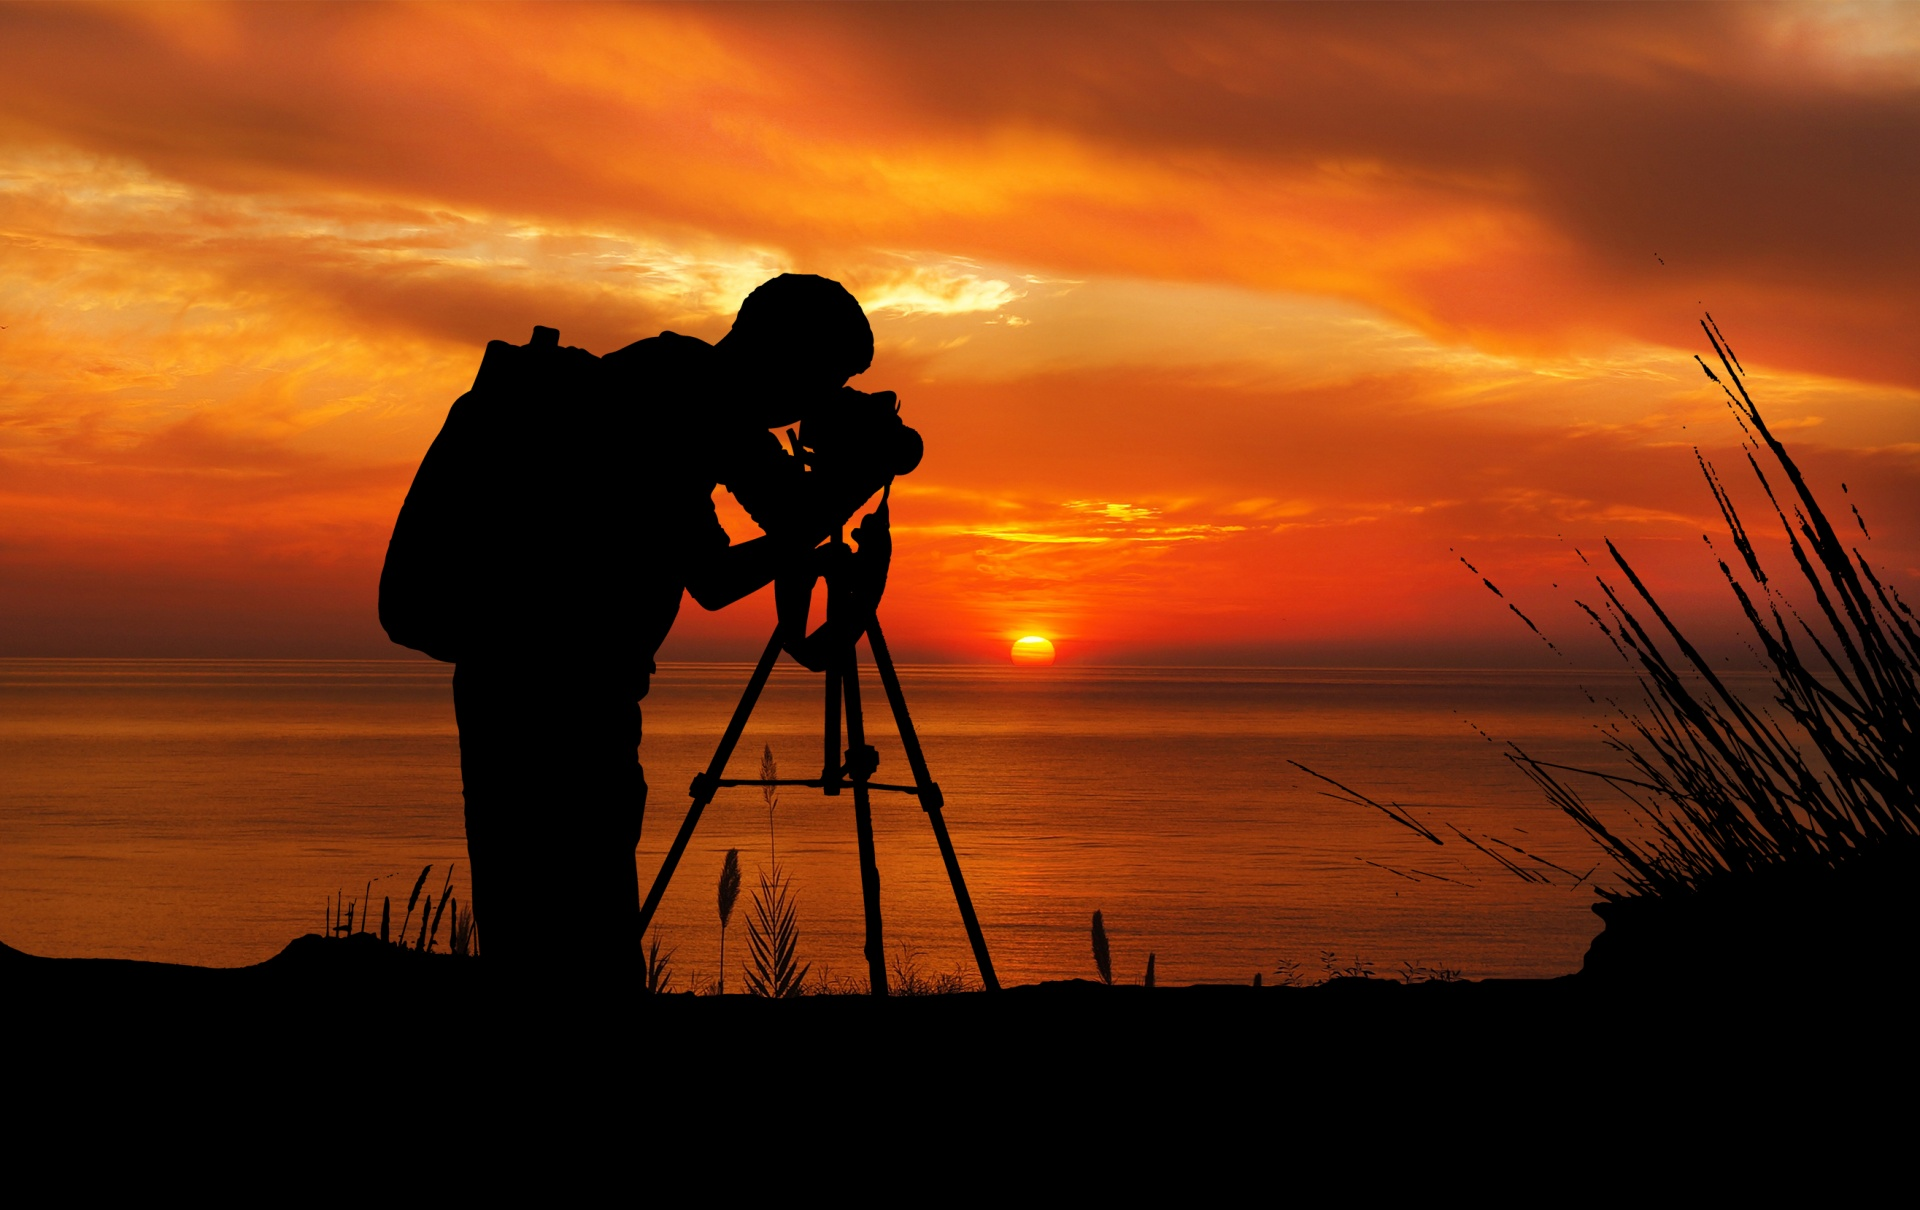 Wisbech & District Camera Club Annual Photographic Exhibition